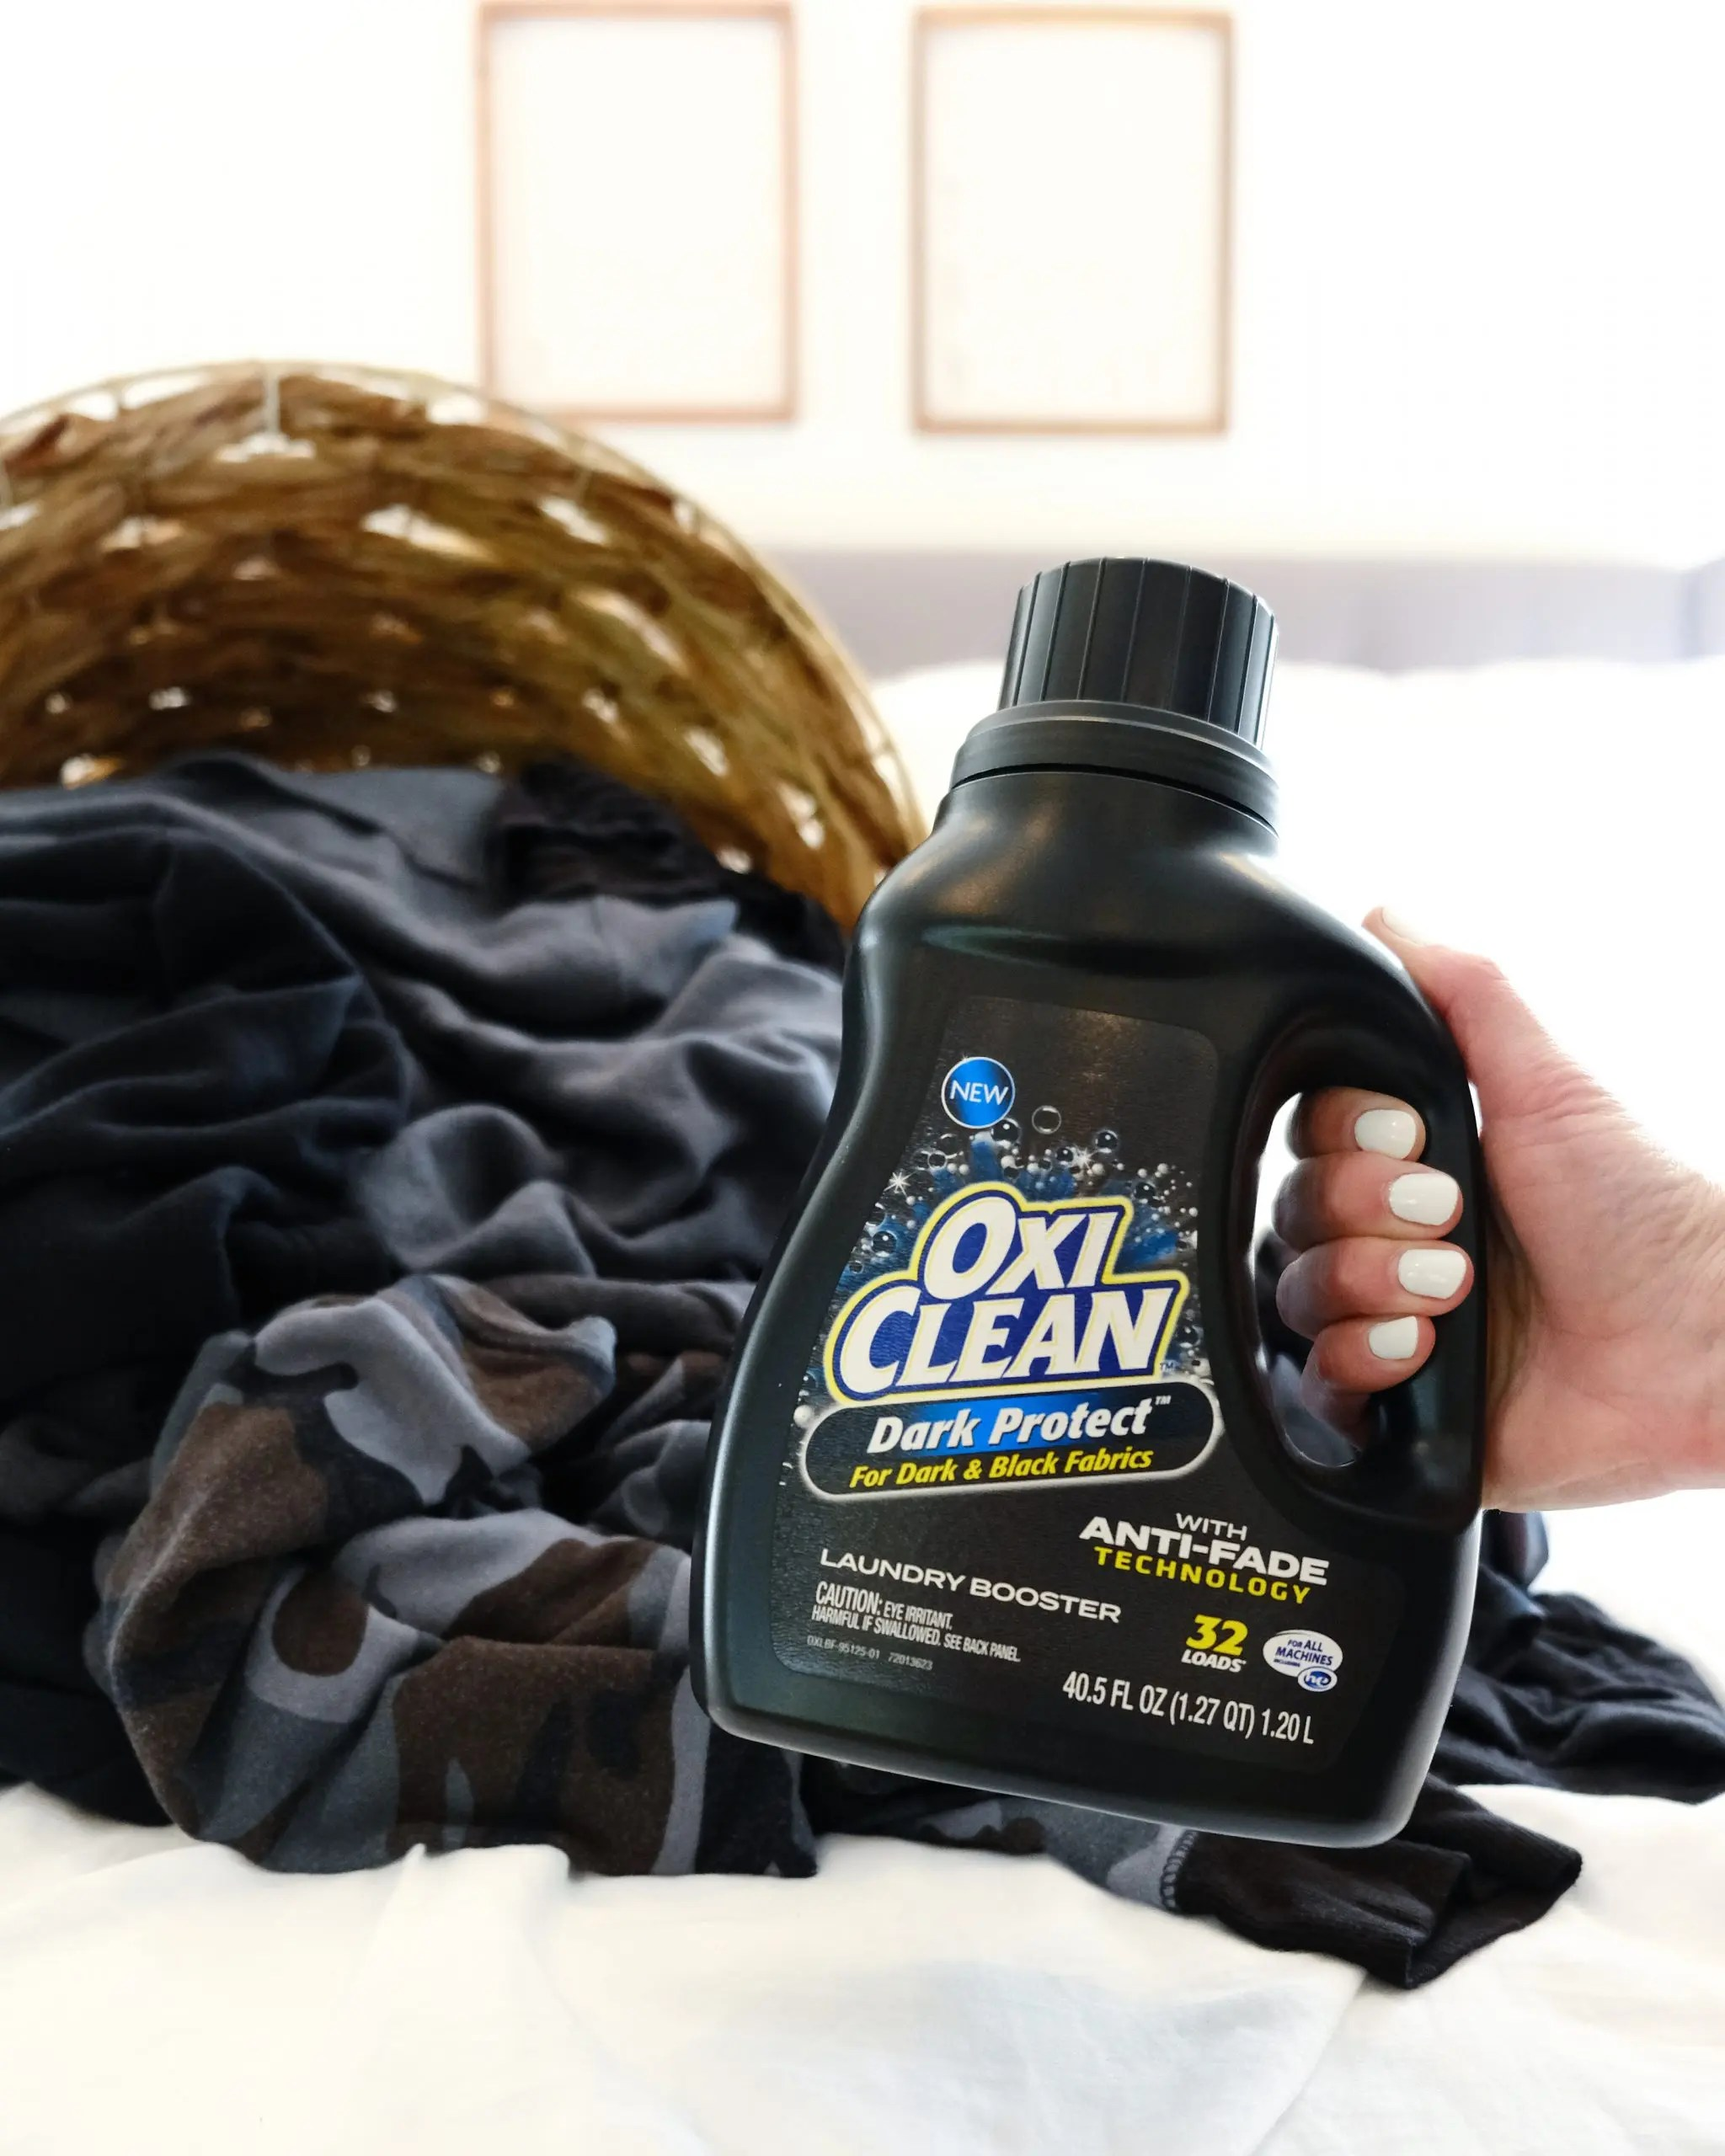 OxiClean Dark Protect Laundry Booster at Walmart